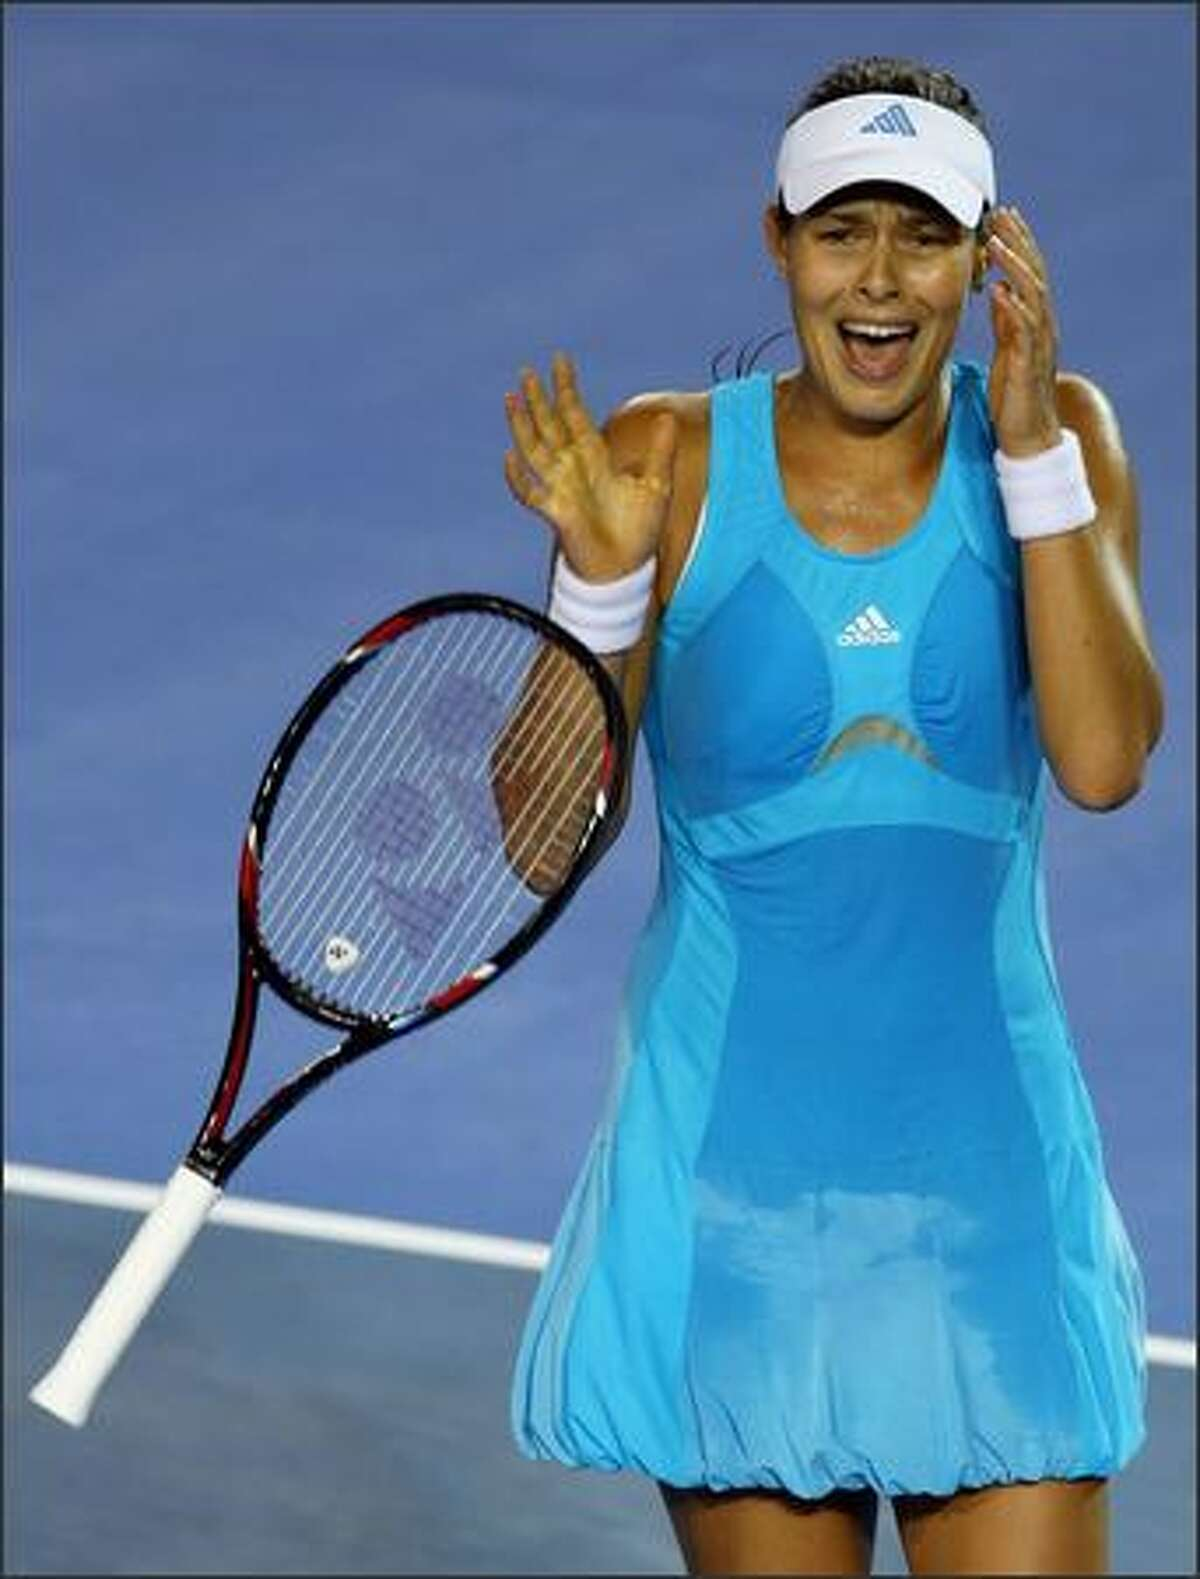 Ana Ivanovic of Serbia celebrates winning match point after her match at the Australian Open in Melbourne, Australia. Photo by Clive Rose/Getty Images